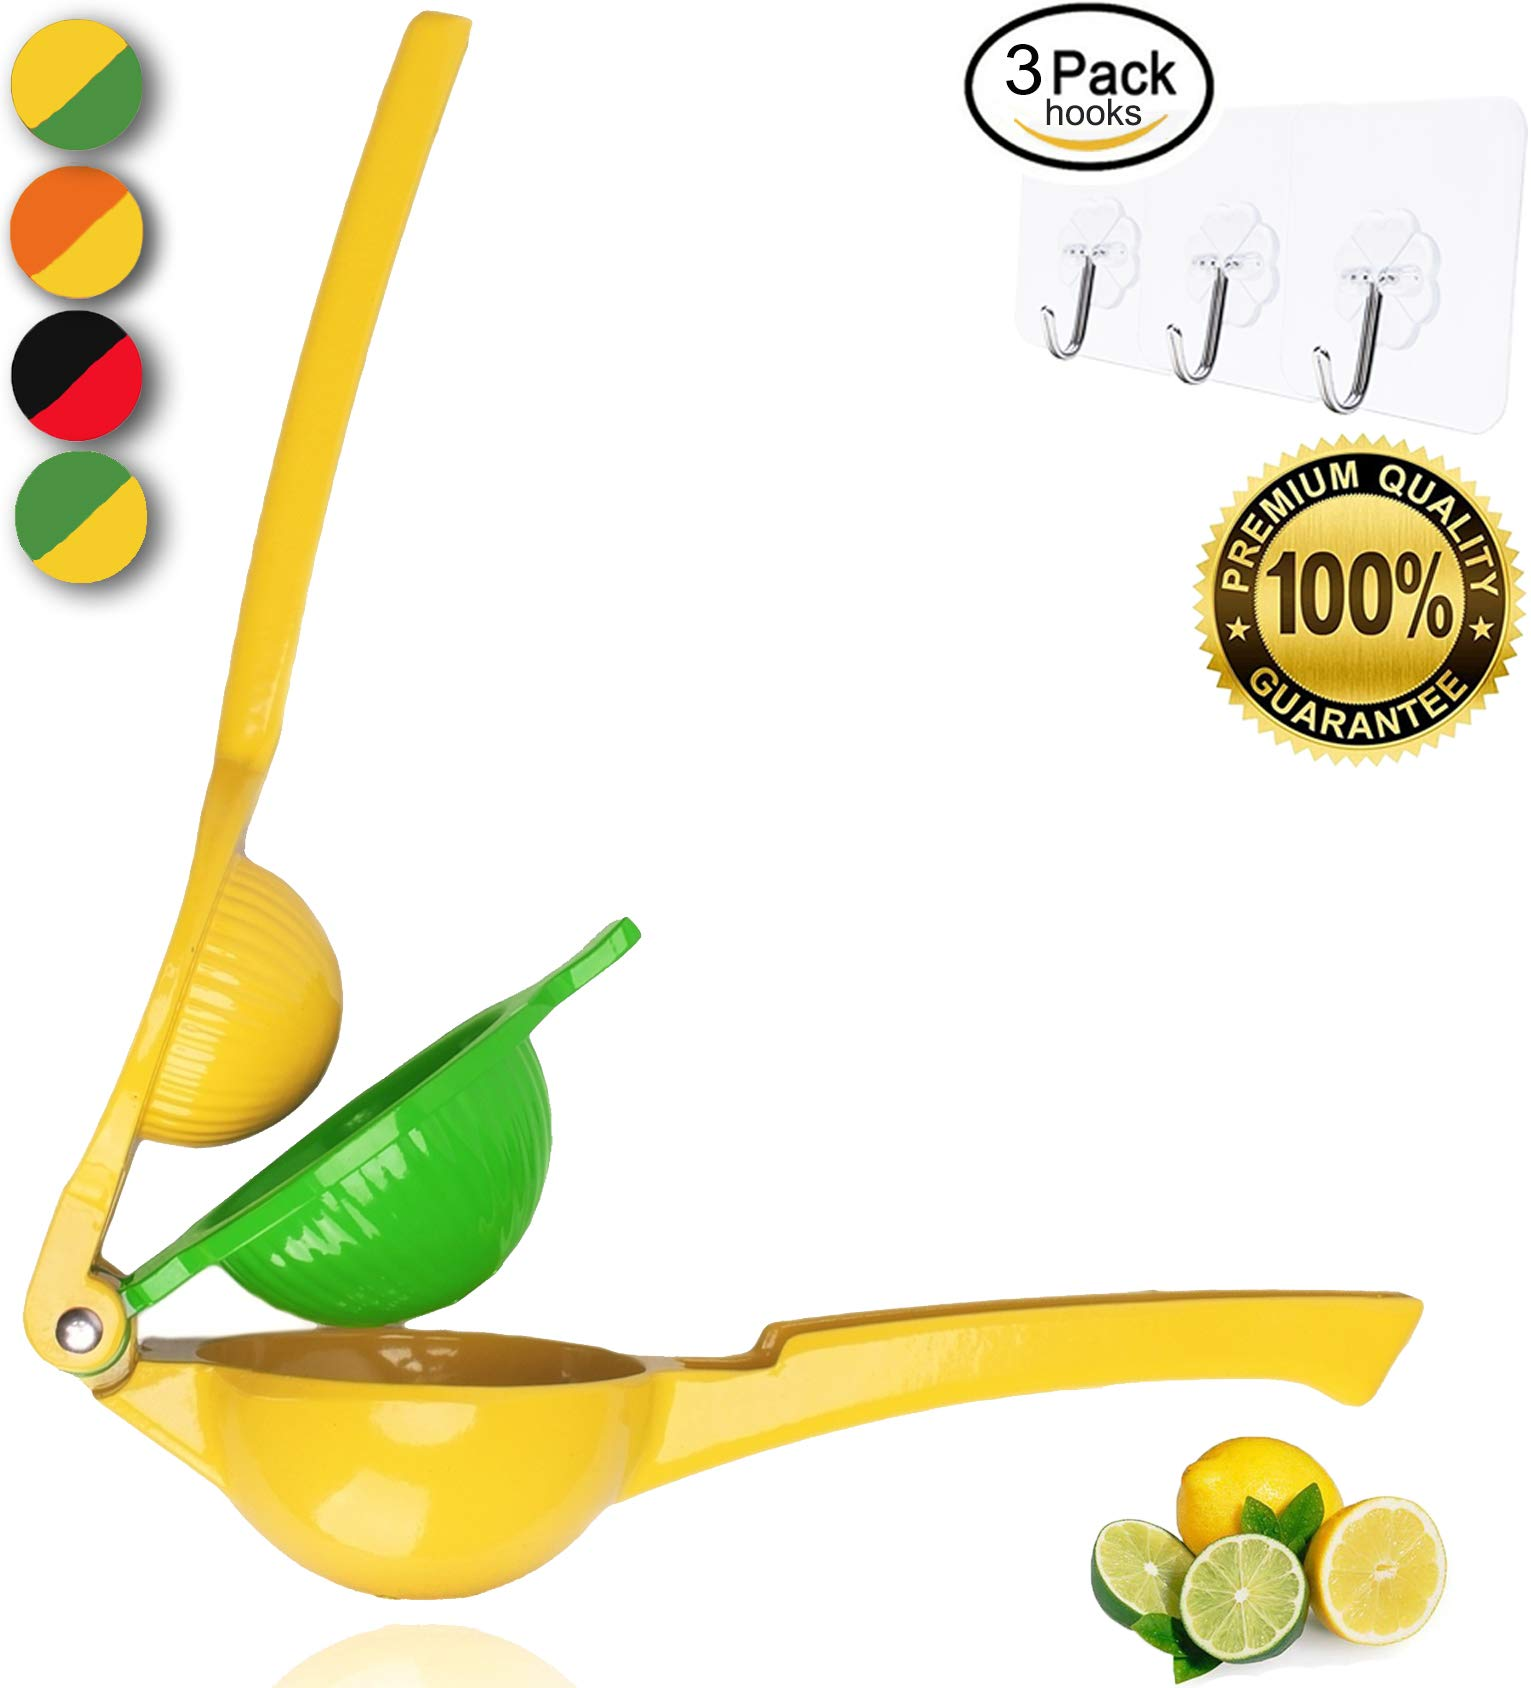 Yimobra Manual Lemon Squeezer,Hand Citrus Lime Juicer Press Premium Quality Professional Kitchen Tool Yellow (Presented Wall Hooks 3 Pack)